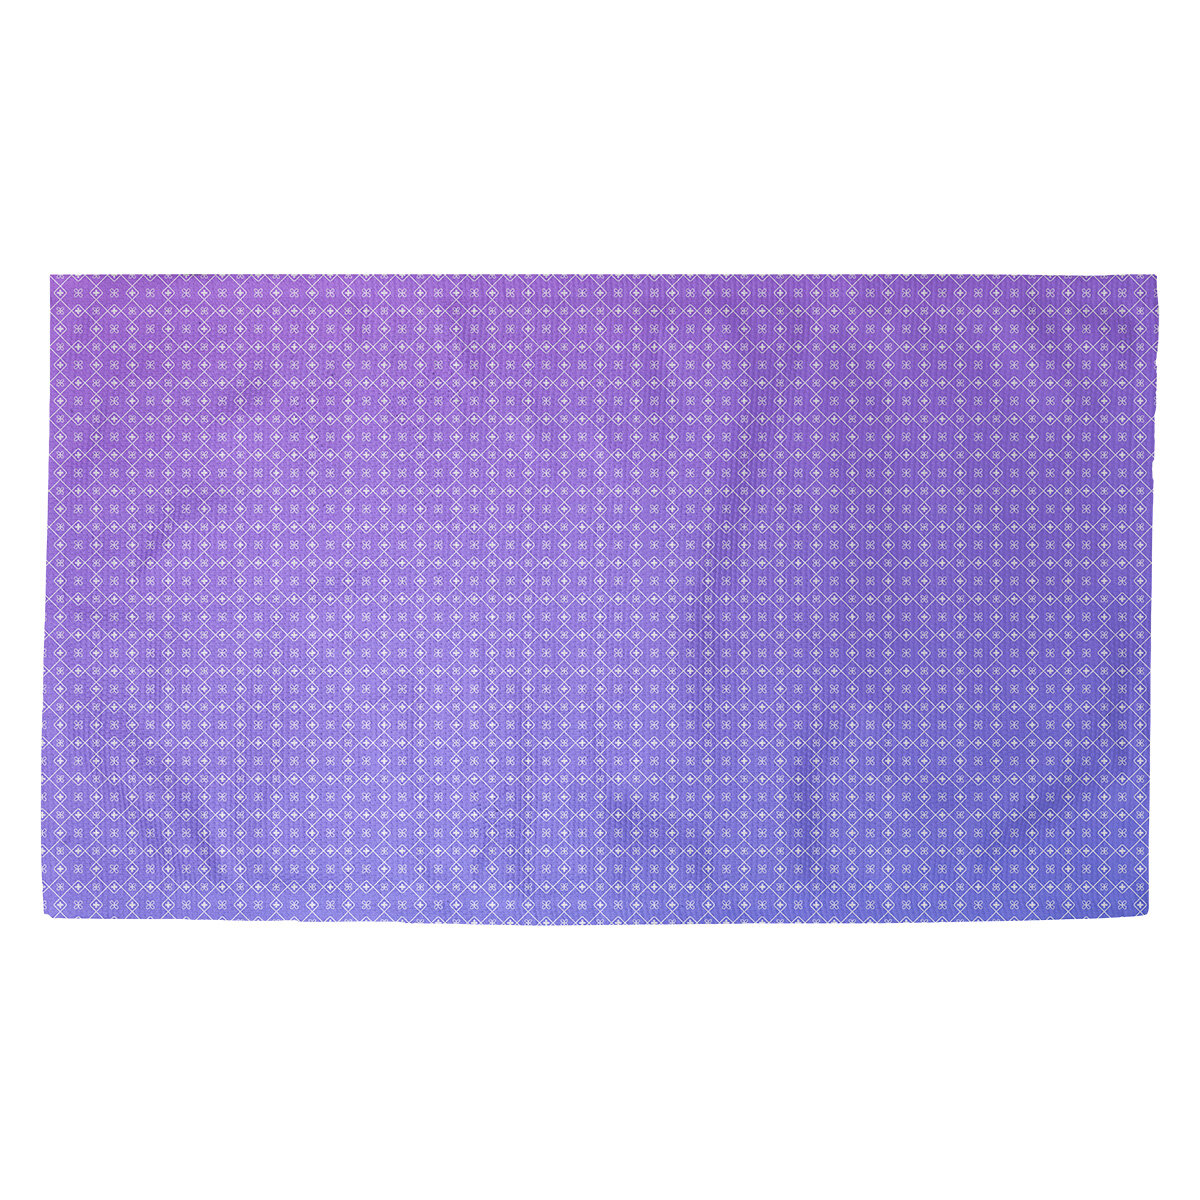 Latitude Run Avicia Doily Blue Purple Area Rug Wayfair